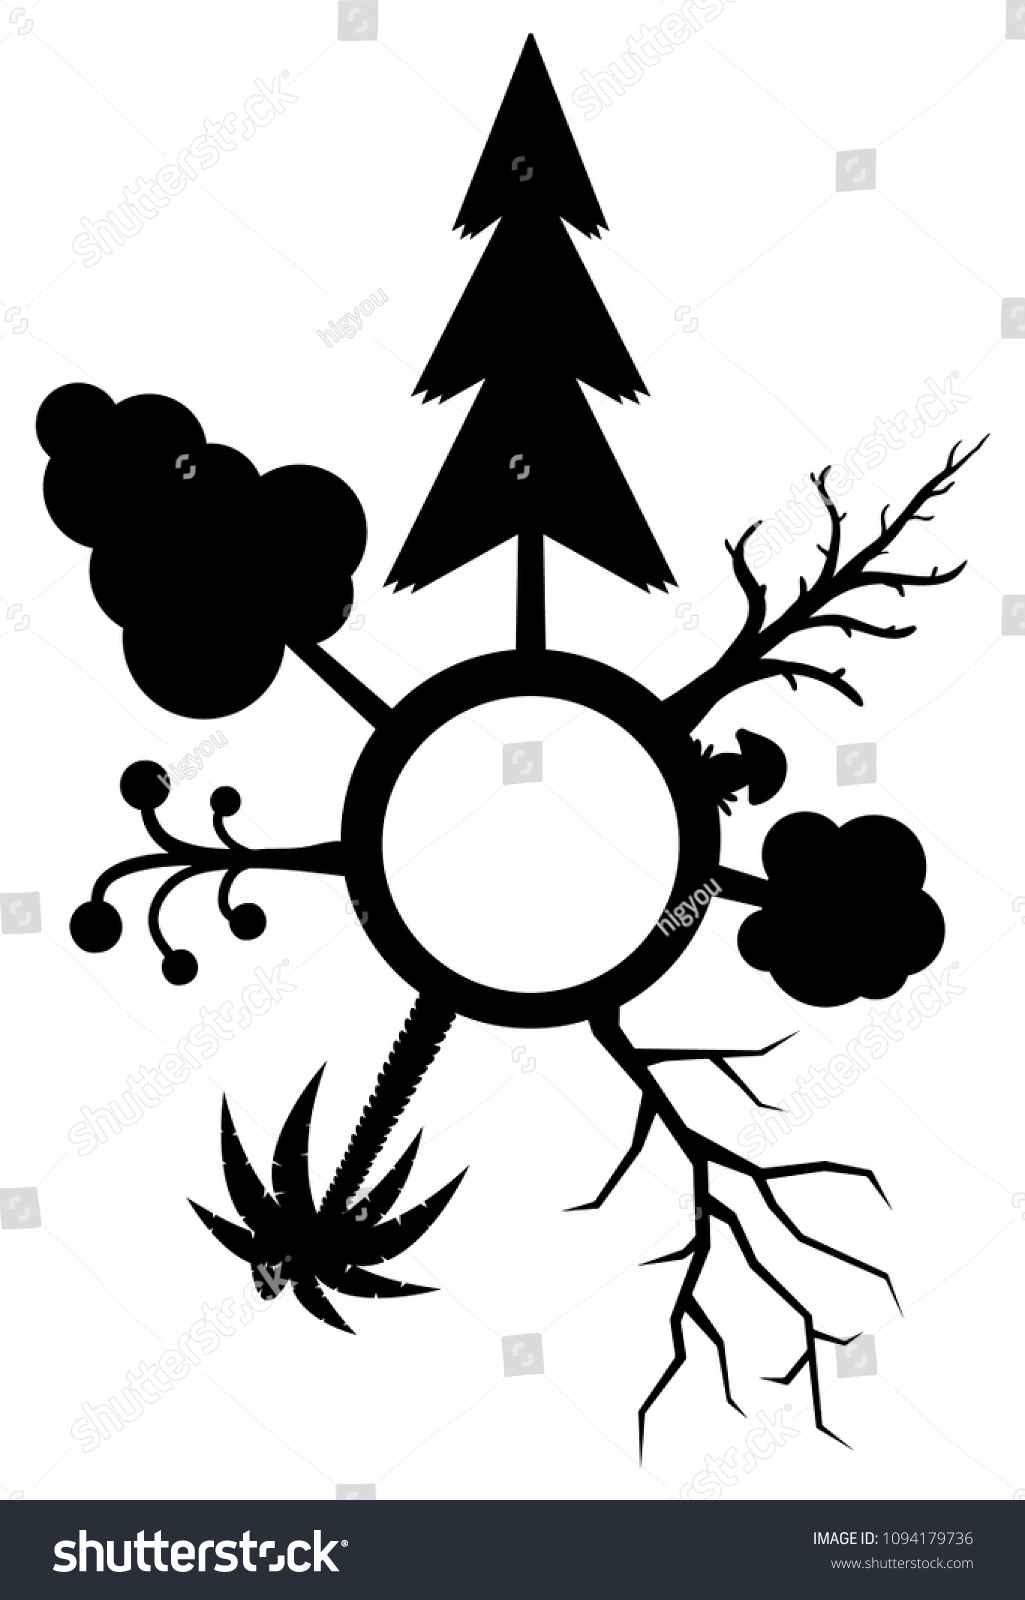 Different Trees Silhouettes Circle Symbol Stencil Stock Vector ...